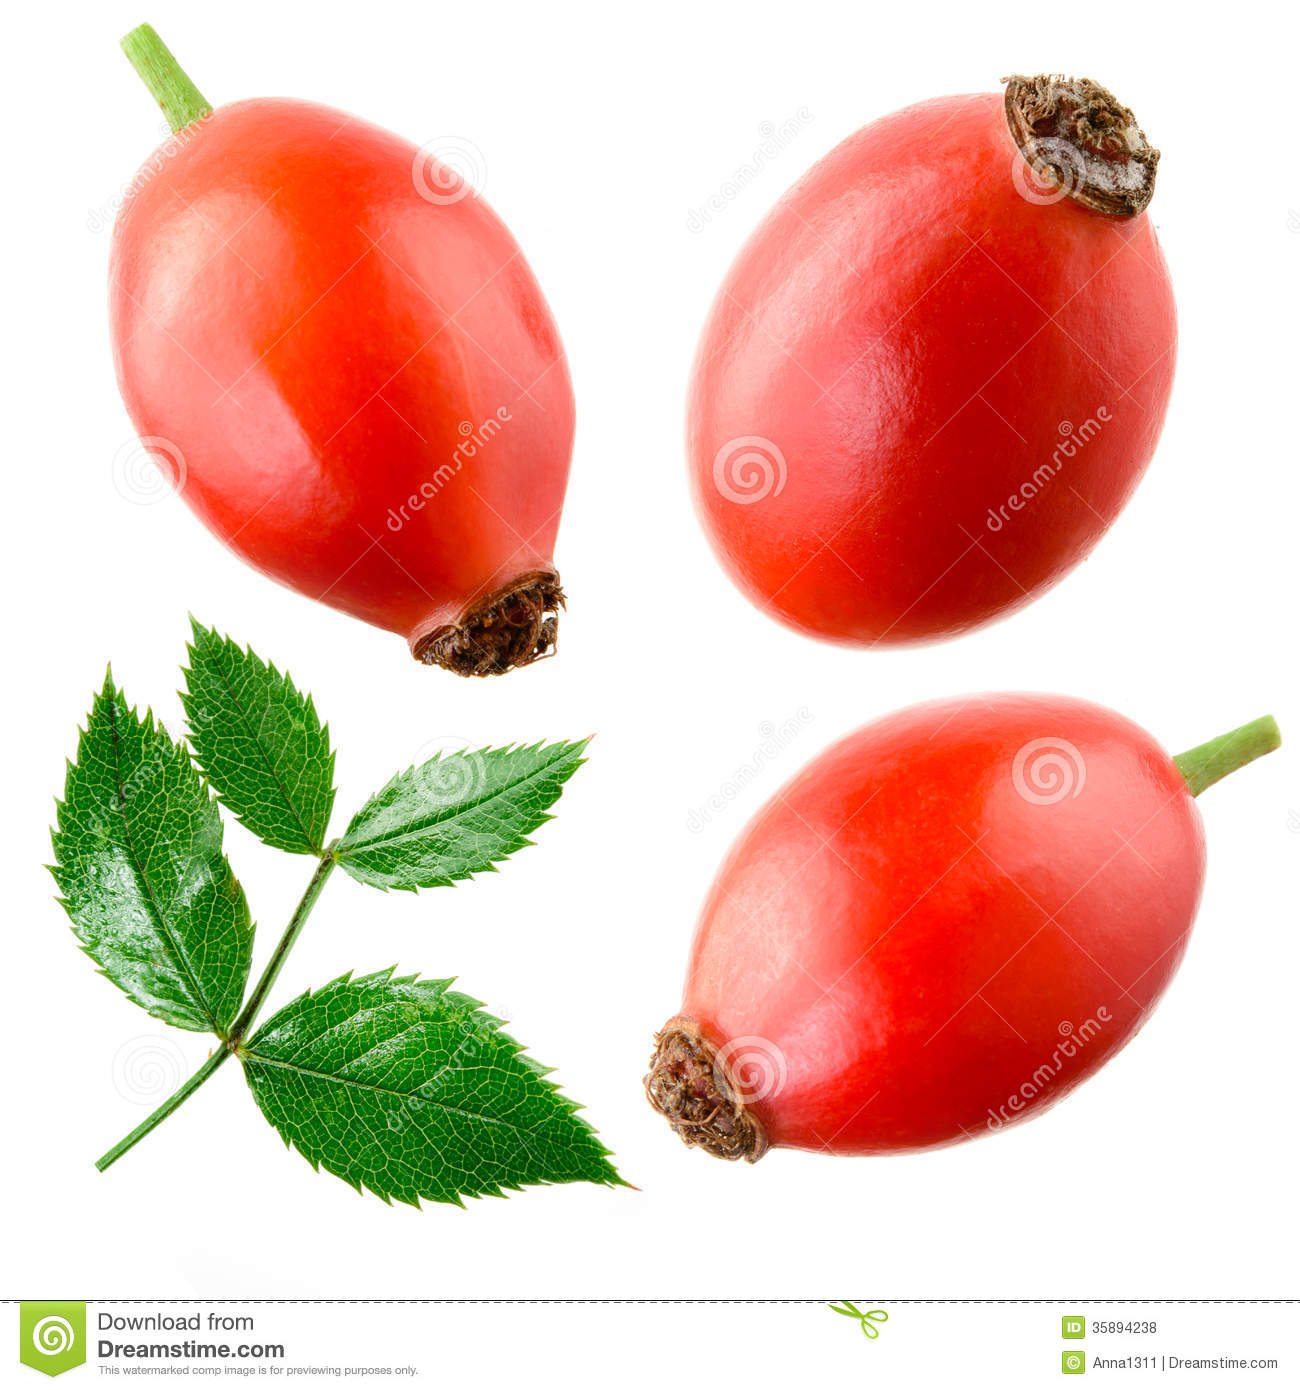 Rose Hip Isolated On A White. Collection Royalty Free Stock Photos.